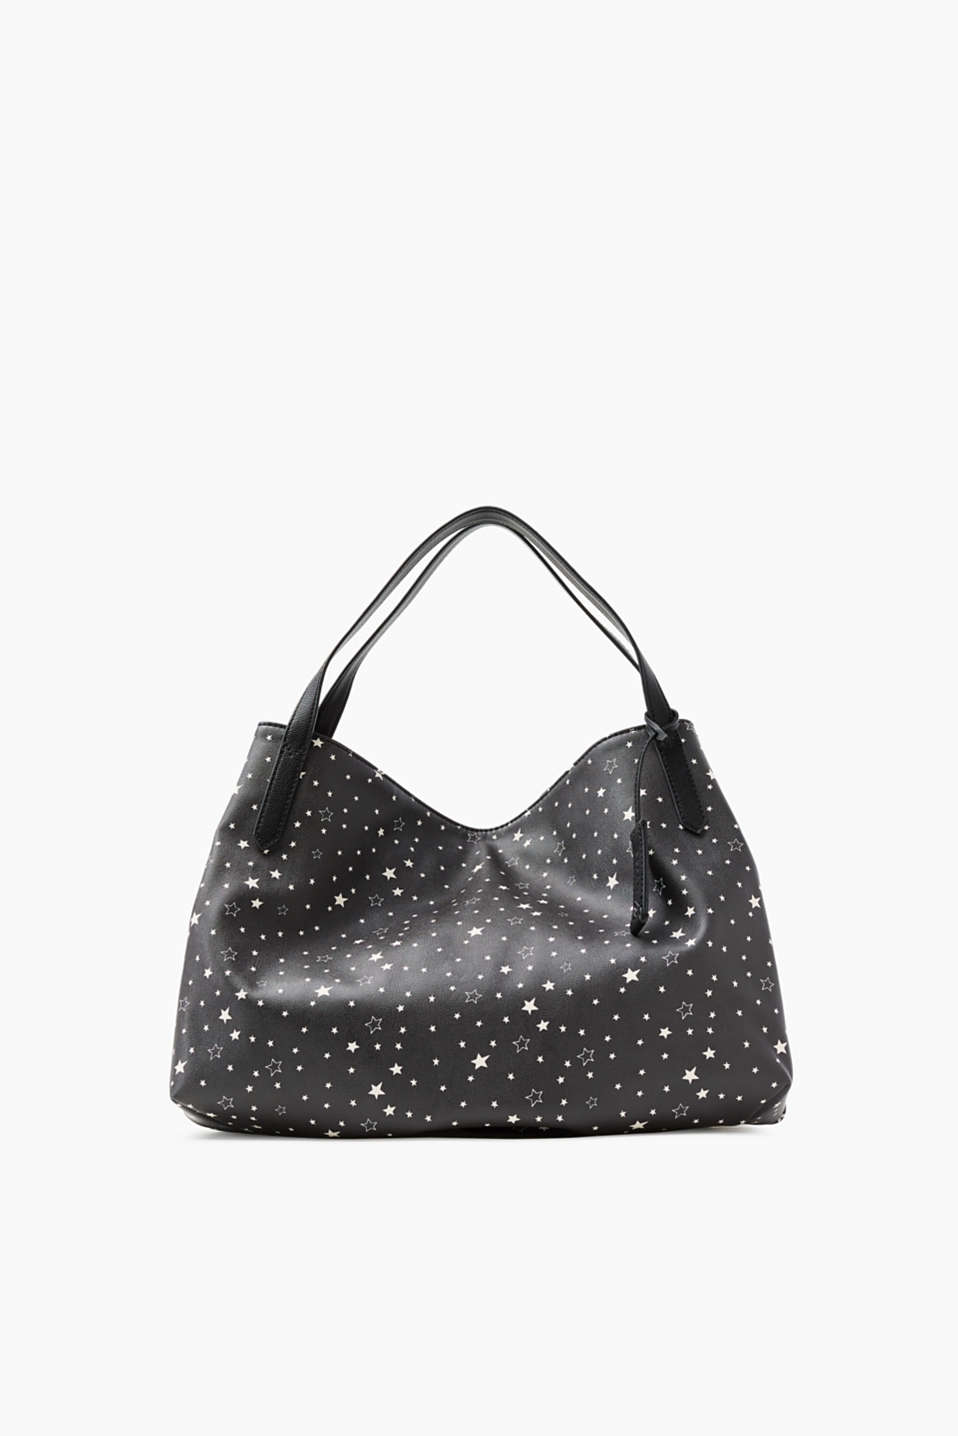 Written in the Stars! Stylischer Shopper in Glattleder-Optik mit Allover-Stern-Print